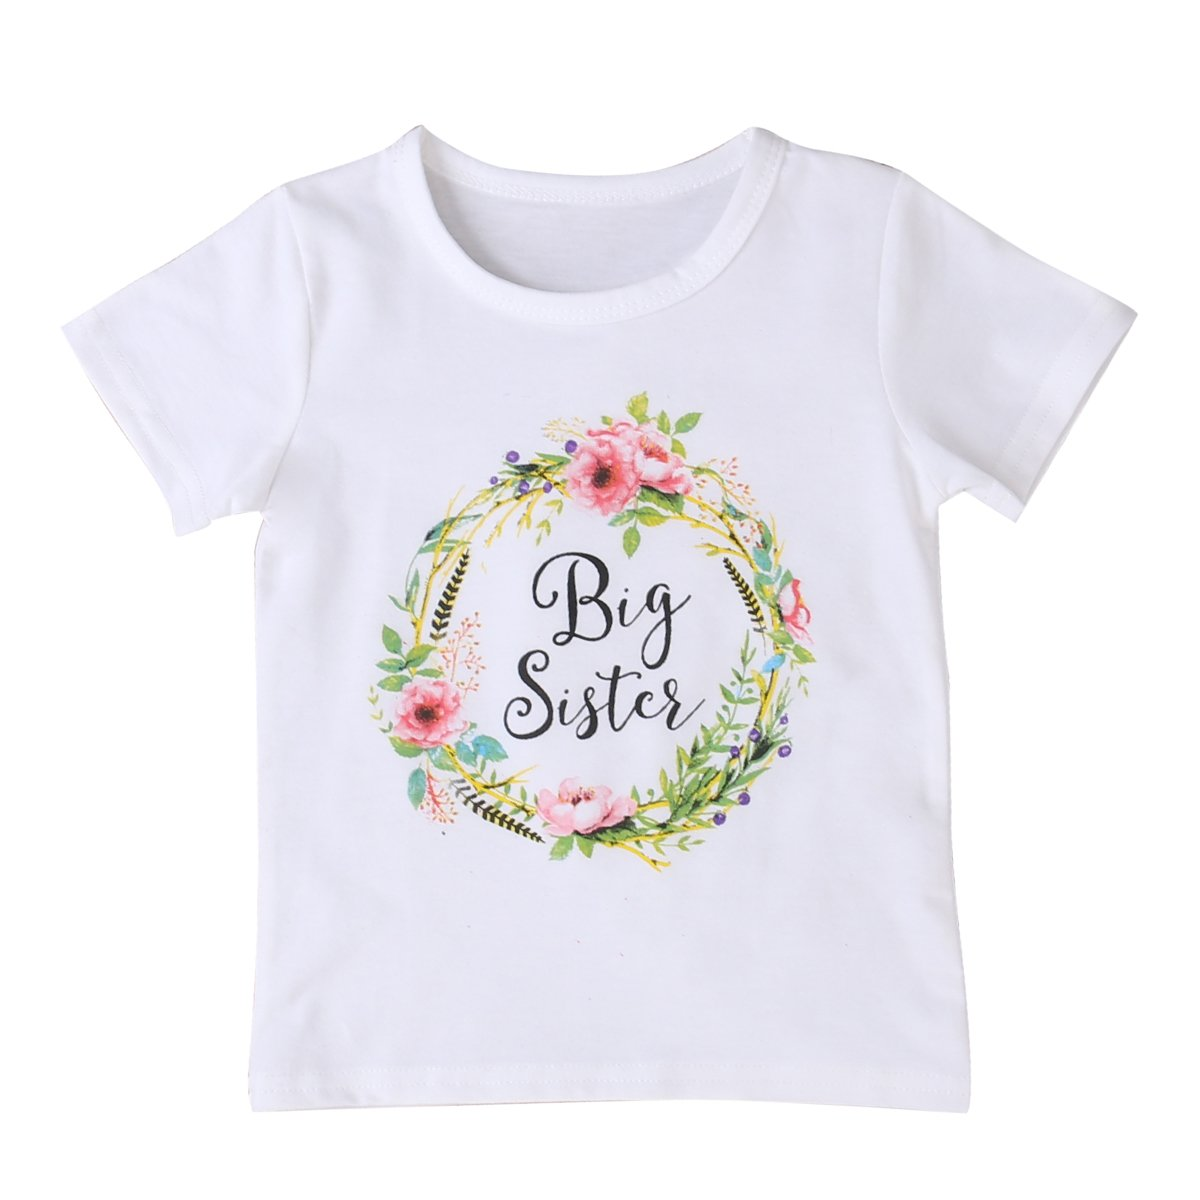 MA&BABY Newborn Baby Girls Romper Tops White Shirt Sisters Outfits Clothes Set Moore